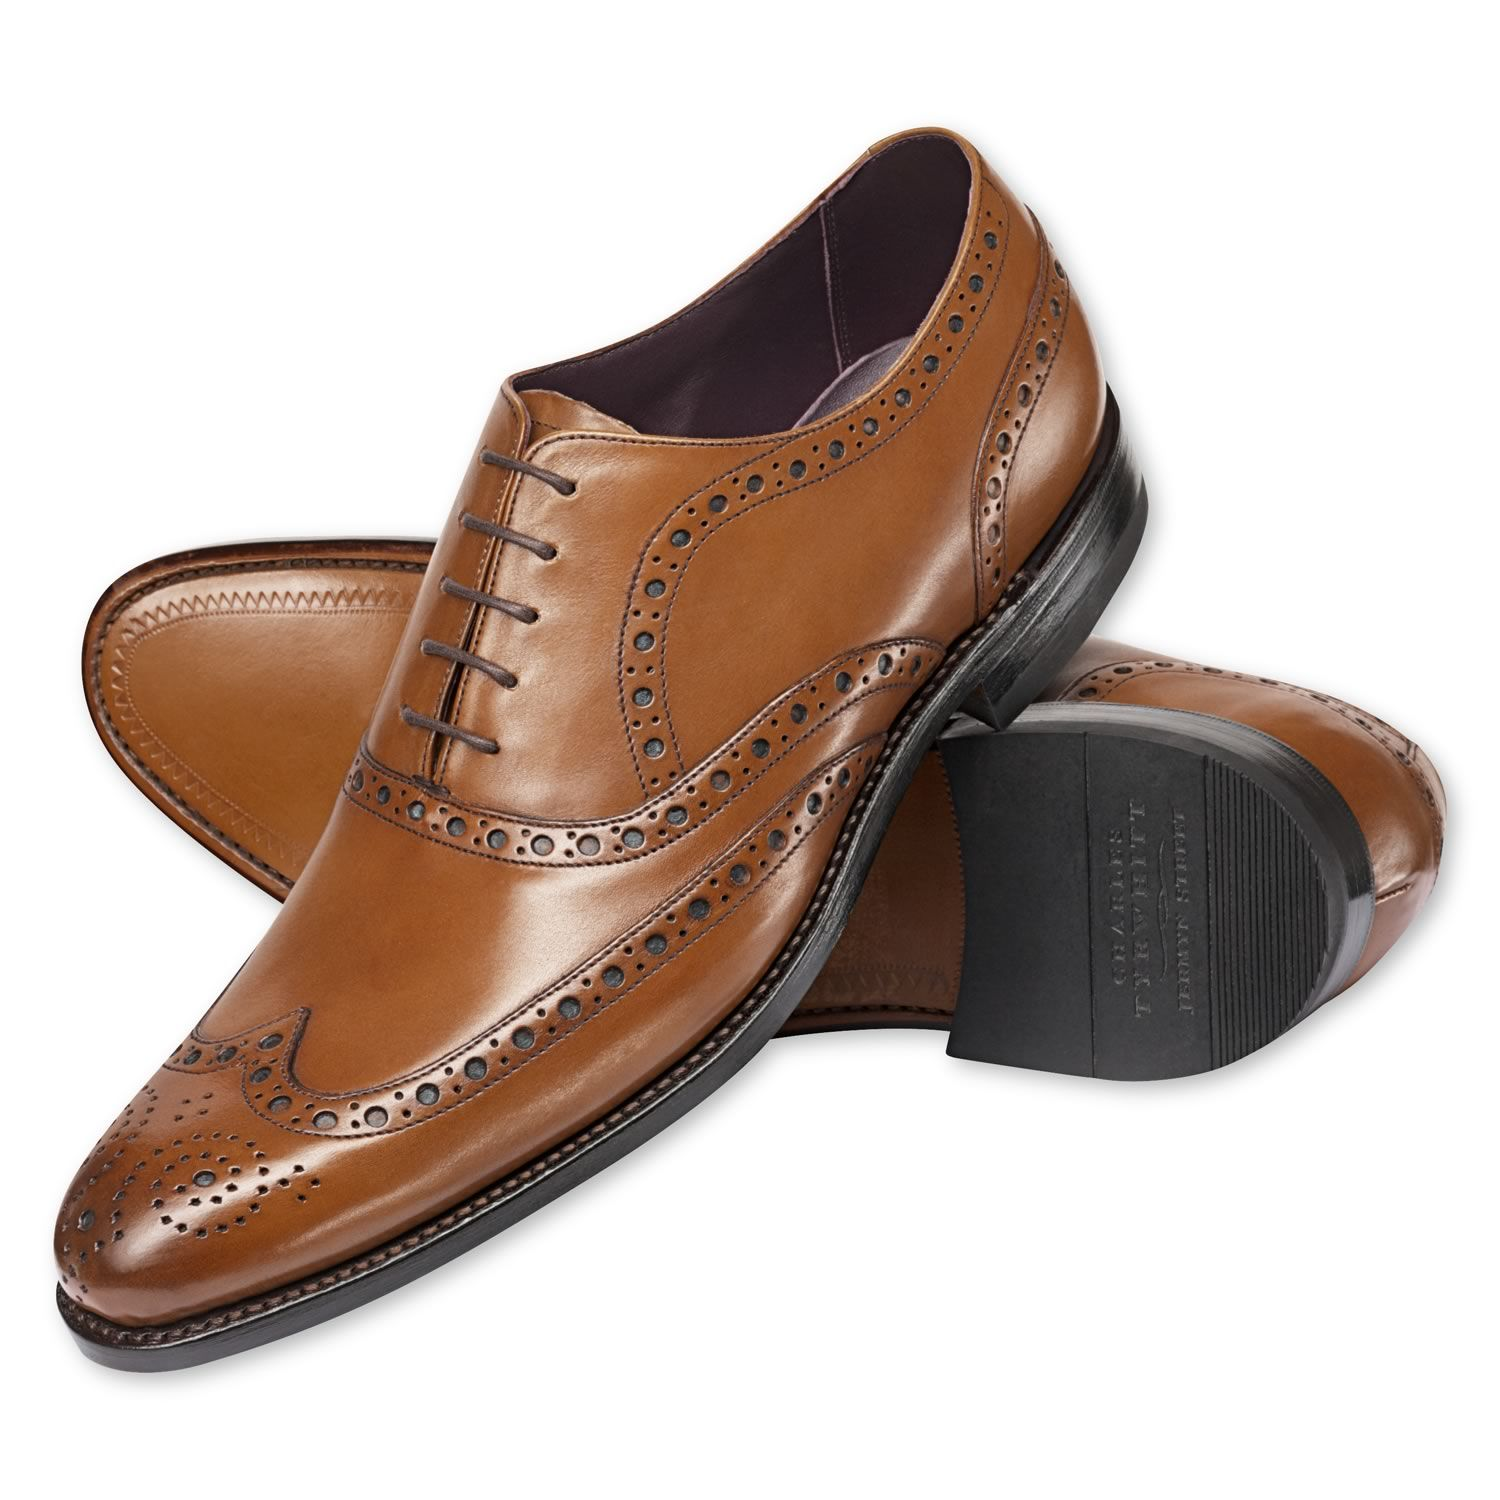 Brown Kirkby Black Label brogue shoes | Men's business ...